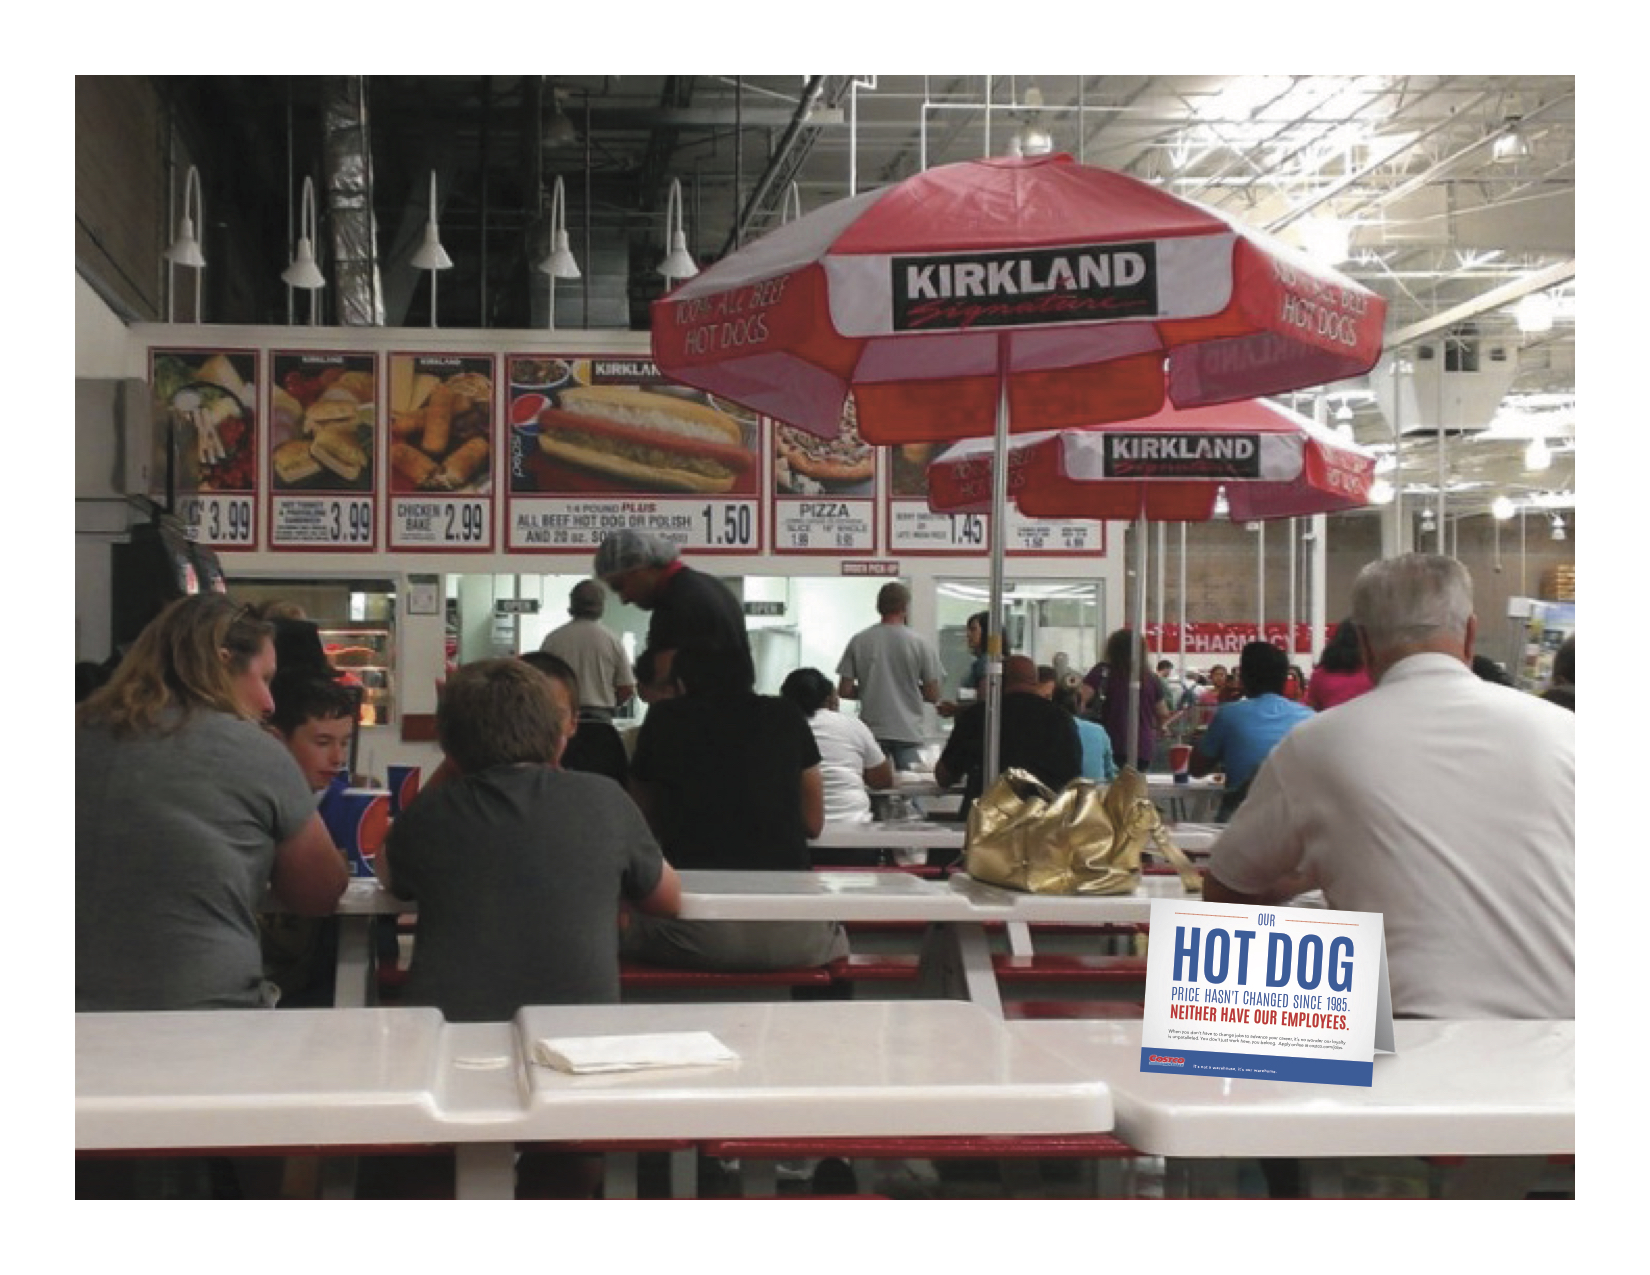 Our hot dog price hasn't changed since 1985. Neither have our employees.